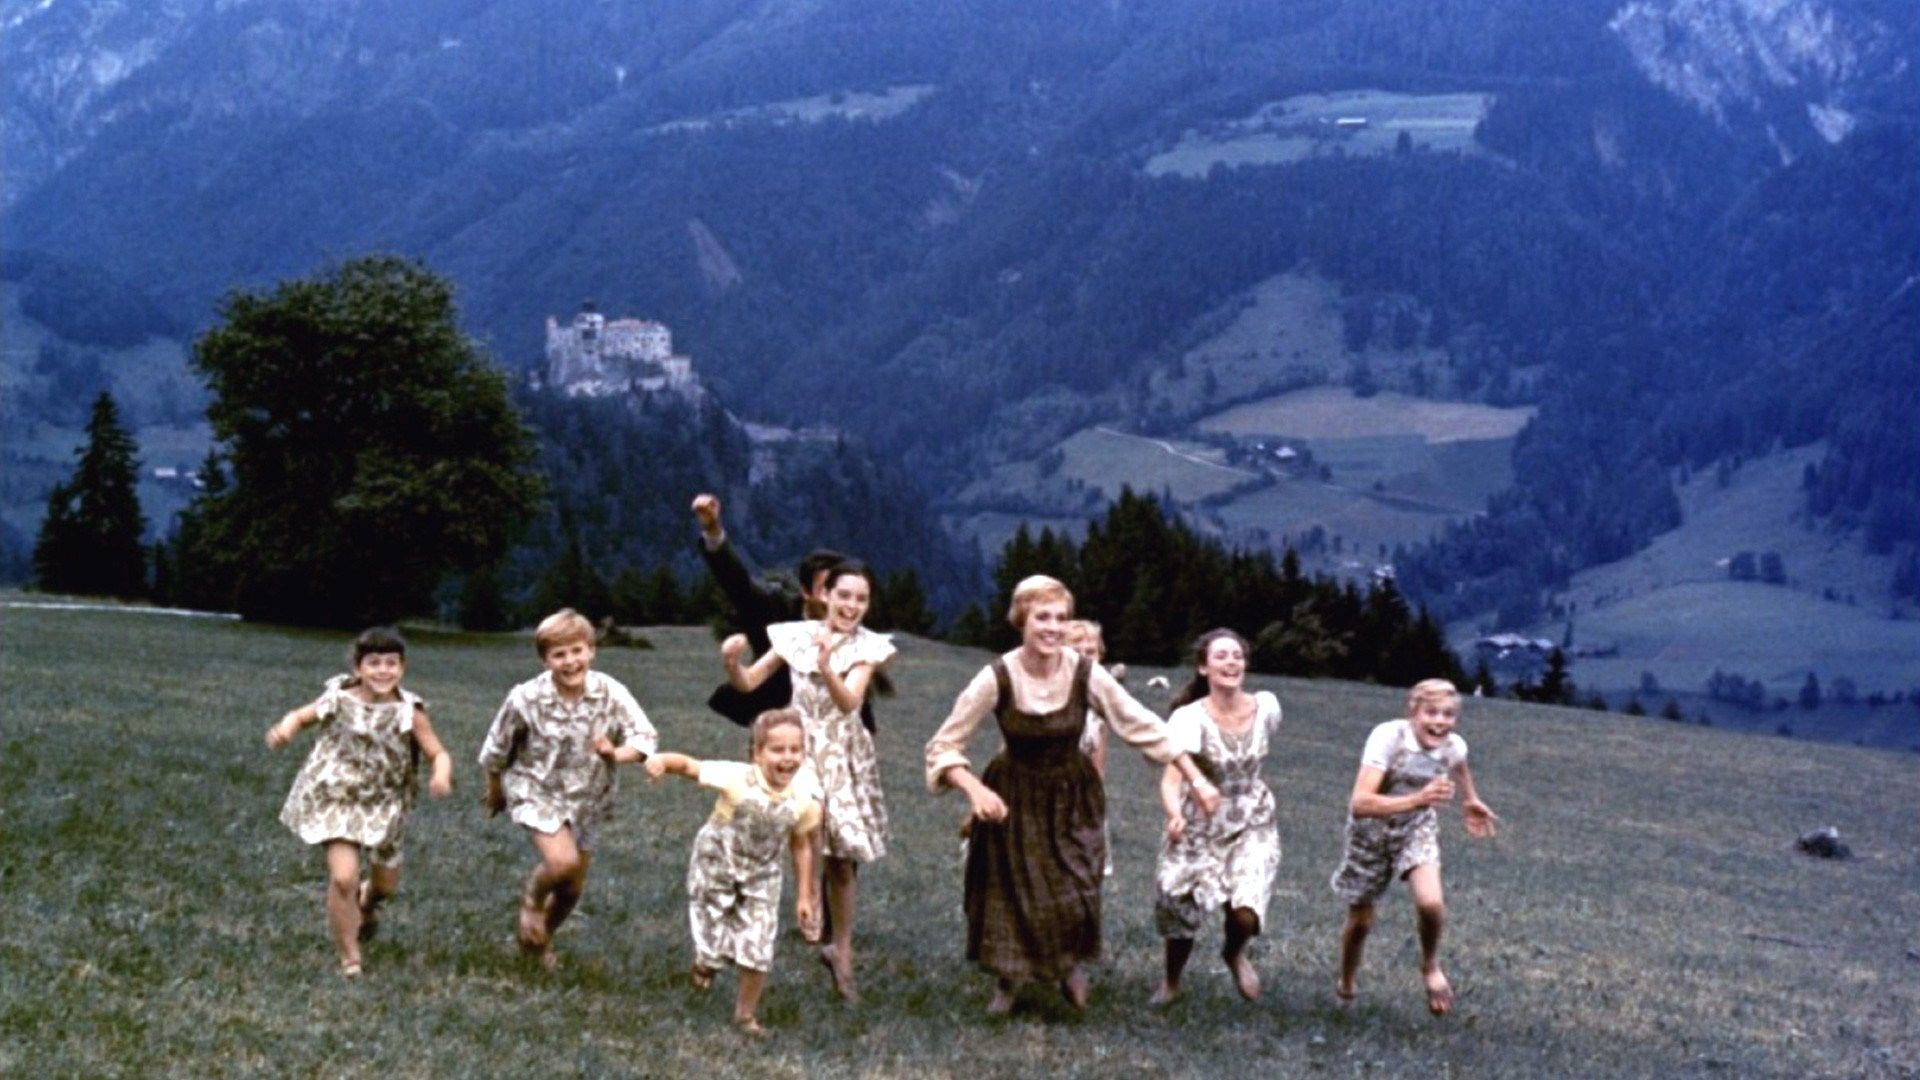 1920x1080 Free Download The Sound Of Music Sound Of Music Movie Sound Of Music Sound Of Music Live